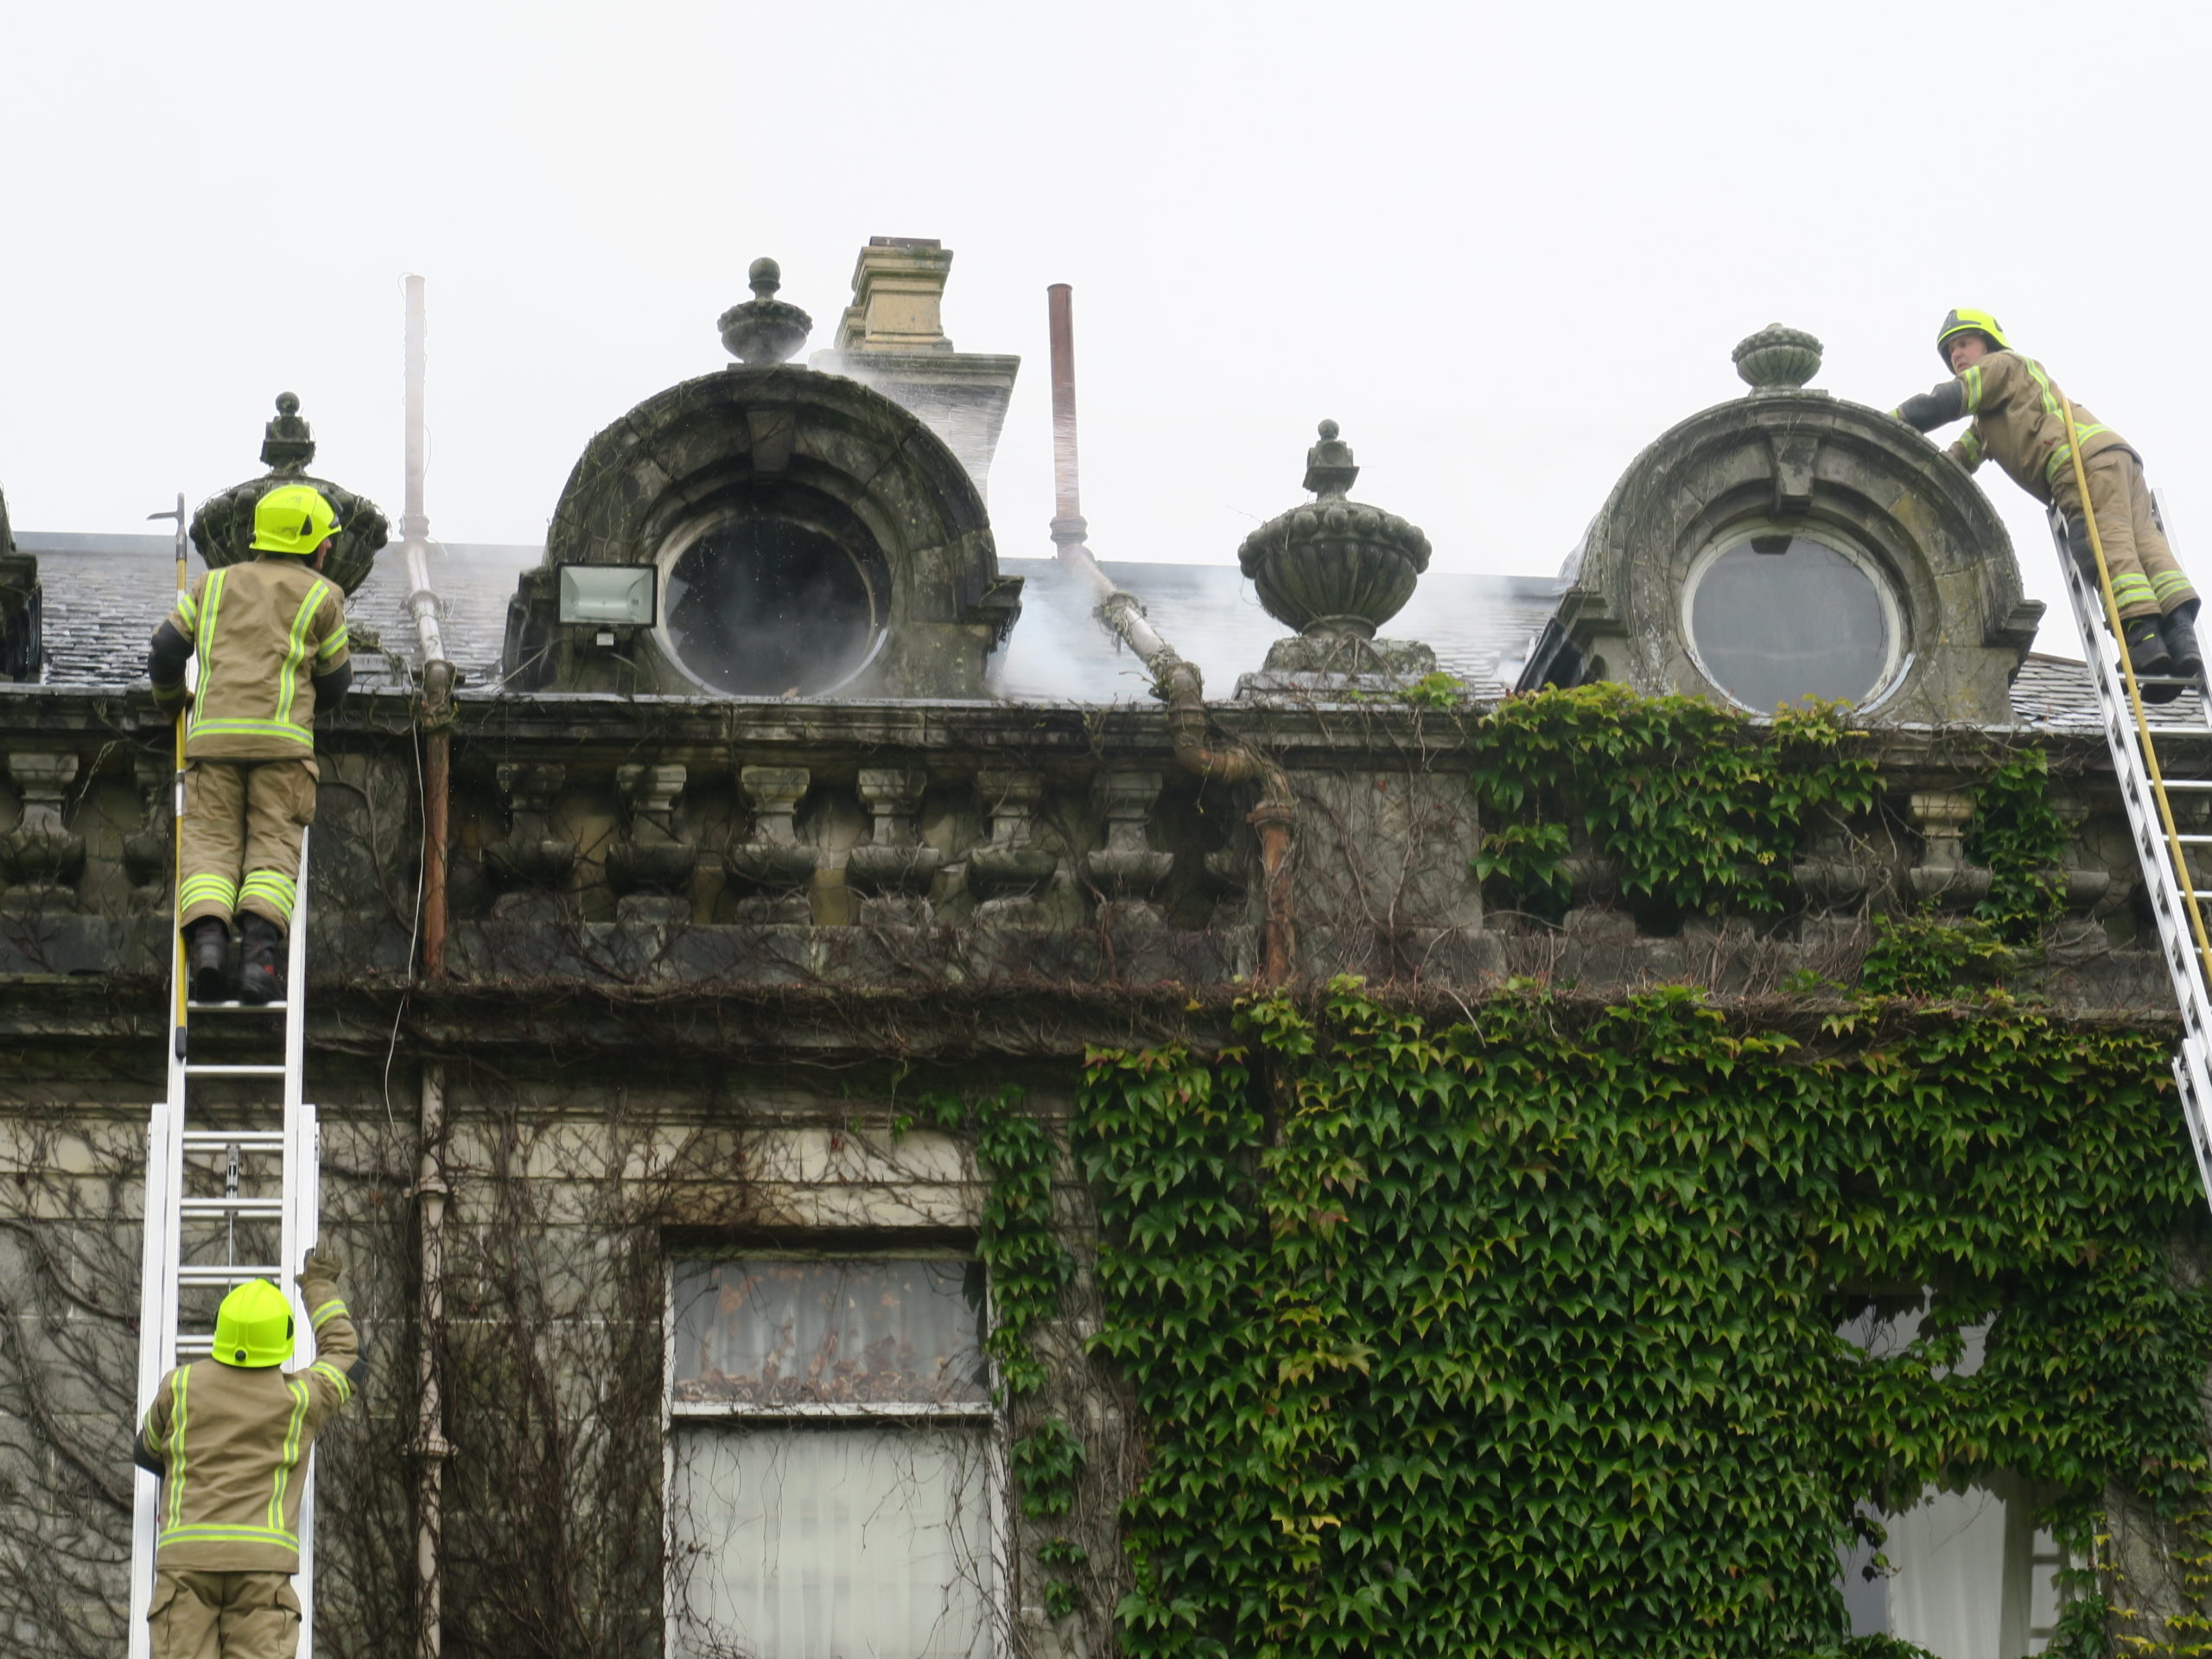 Firefighters on the roof of the main building at Letham Grange.